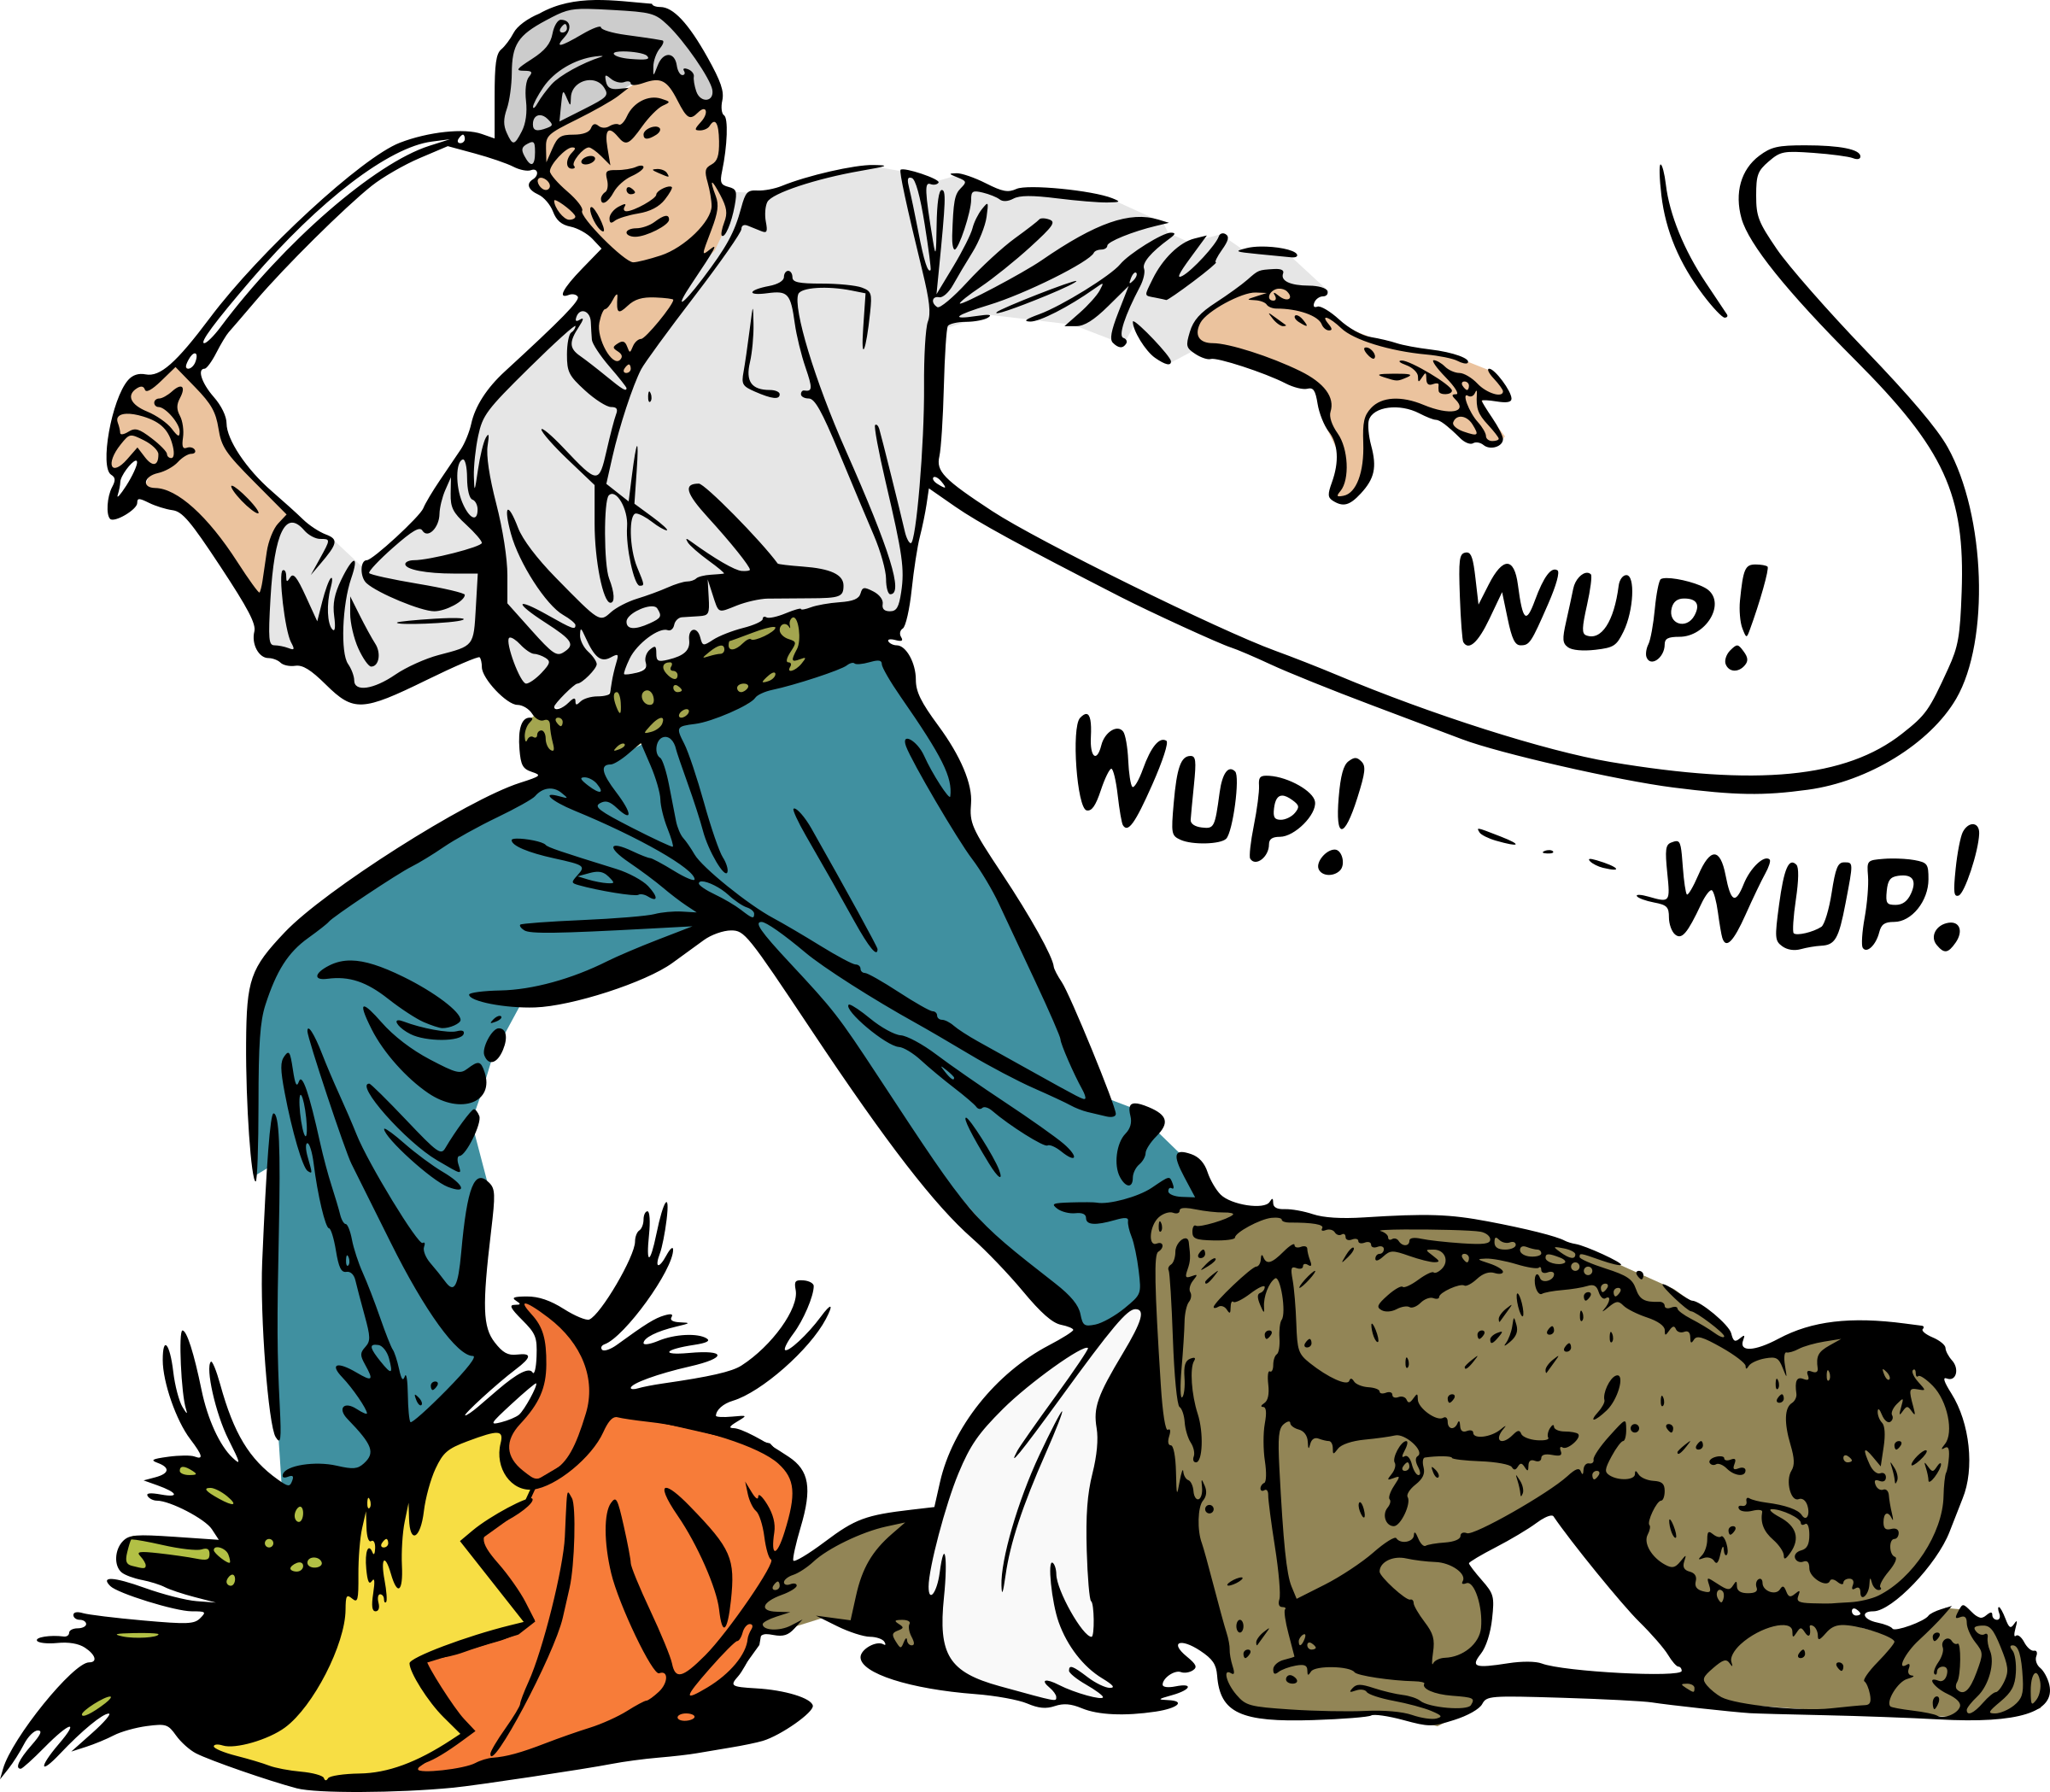 Ivory trader whipping old. Whip clipart infidel